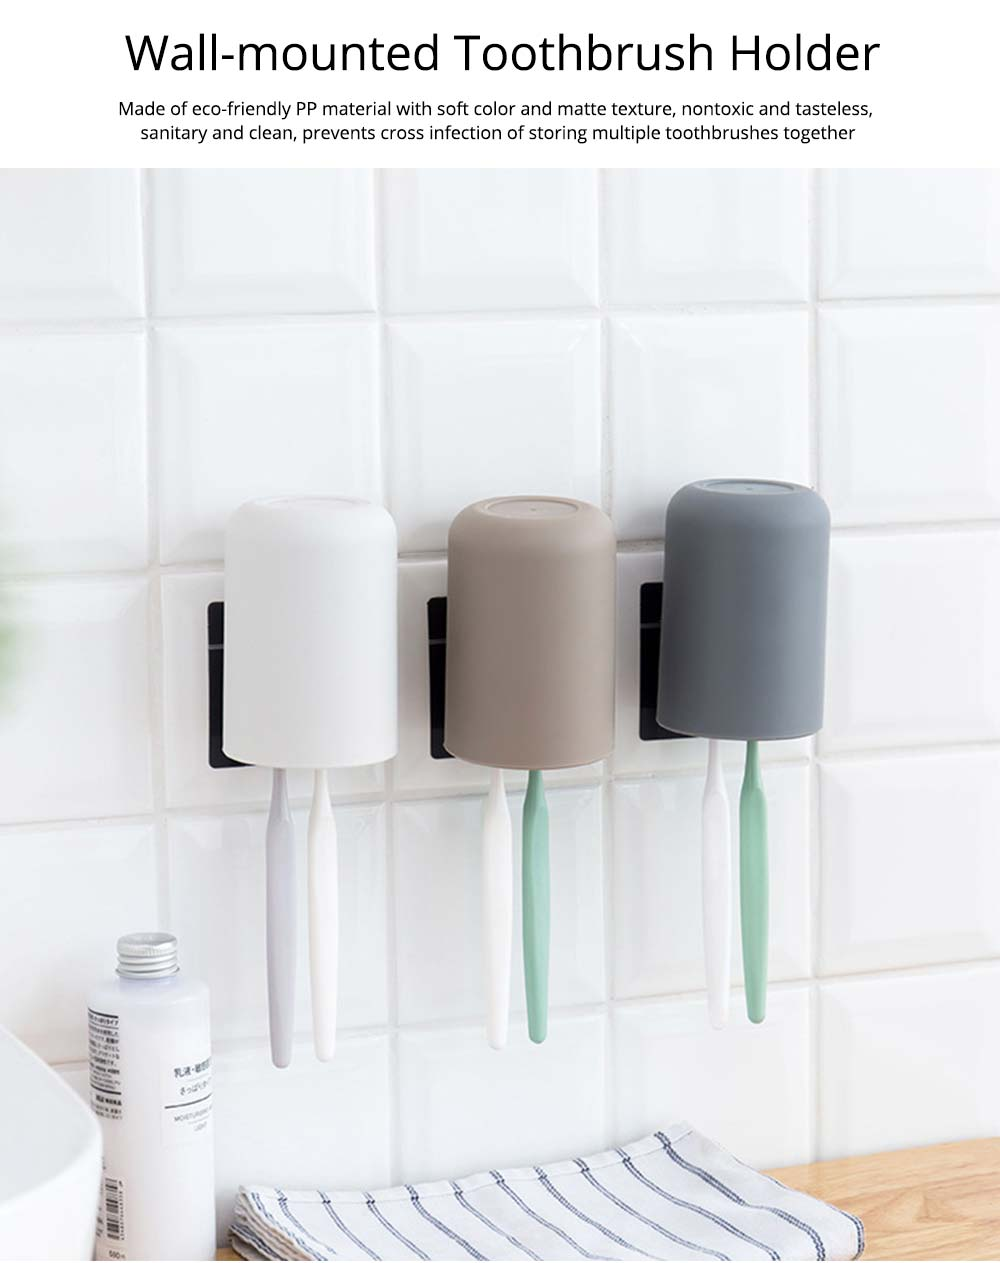 Wall-mounted Toothbrush Holder, Toothbrush Cup, Elegant Color Mouth Cup 0